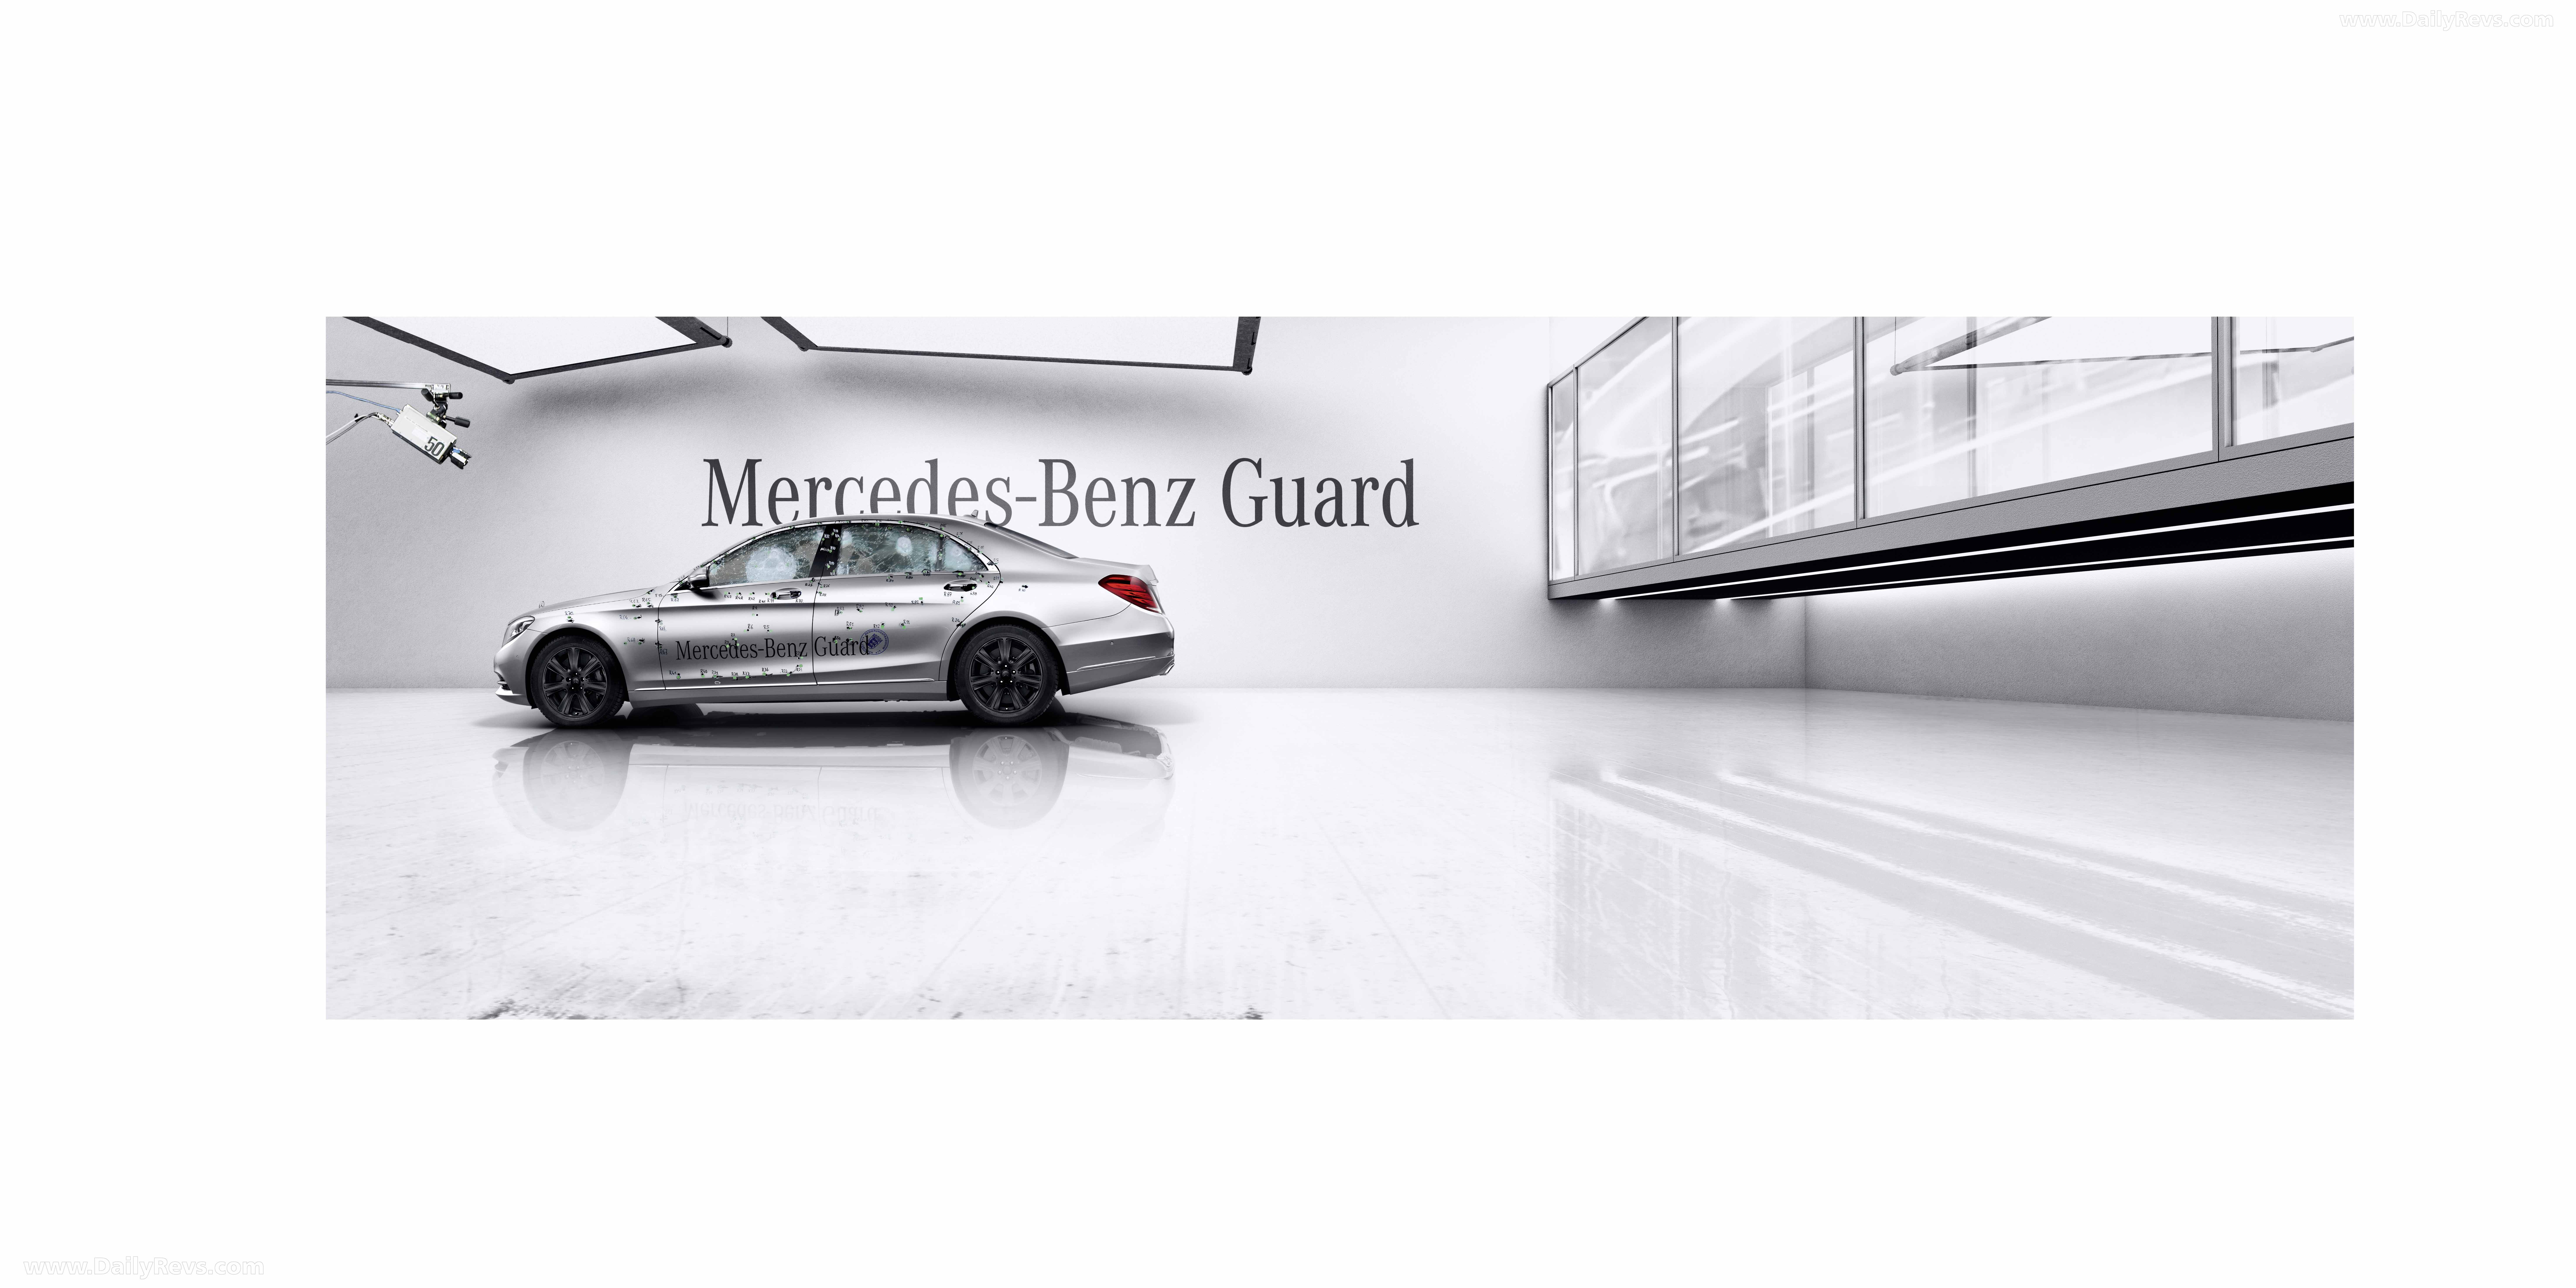 2020 Mercedes-Maybach S 650 Pullman Guard full